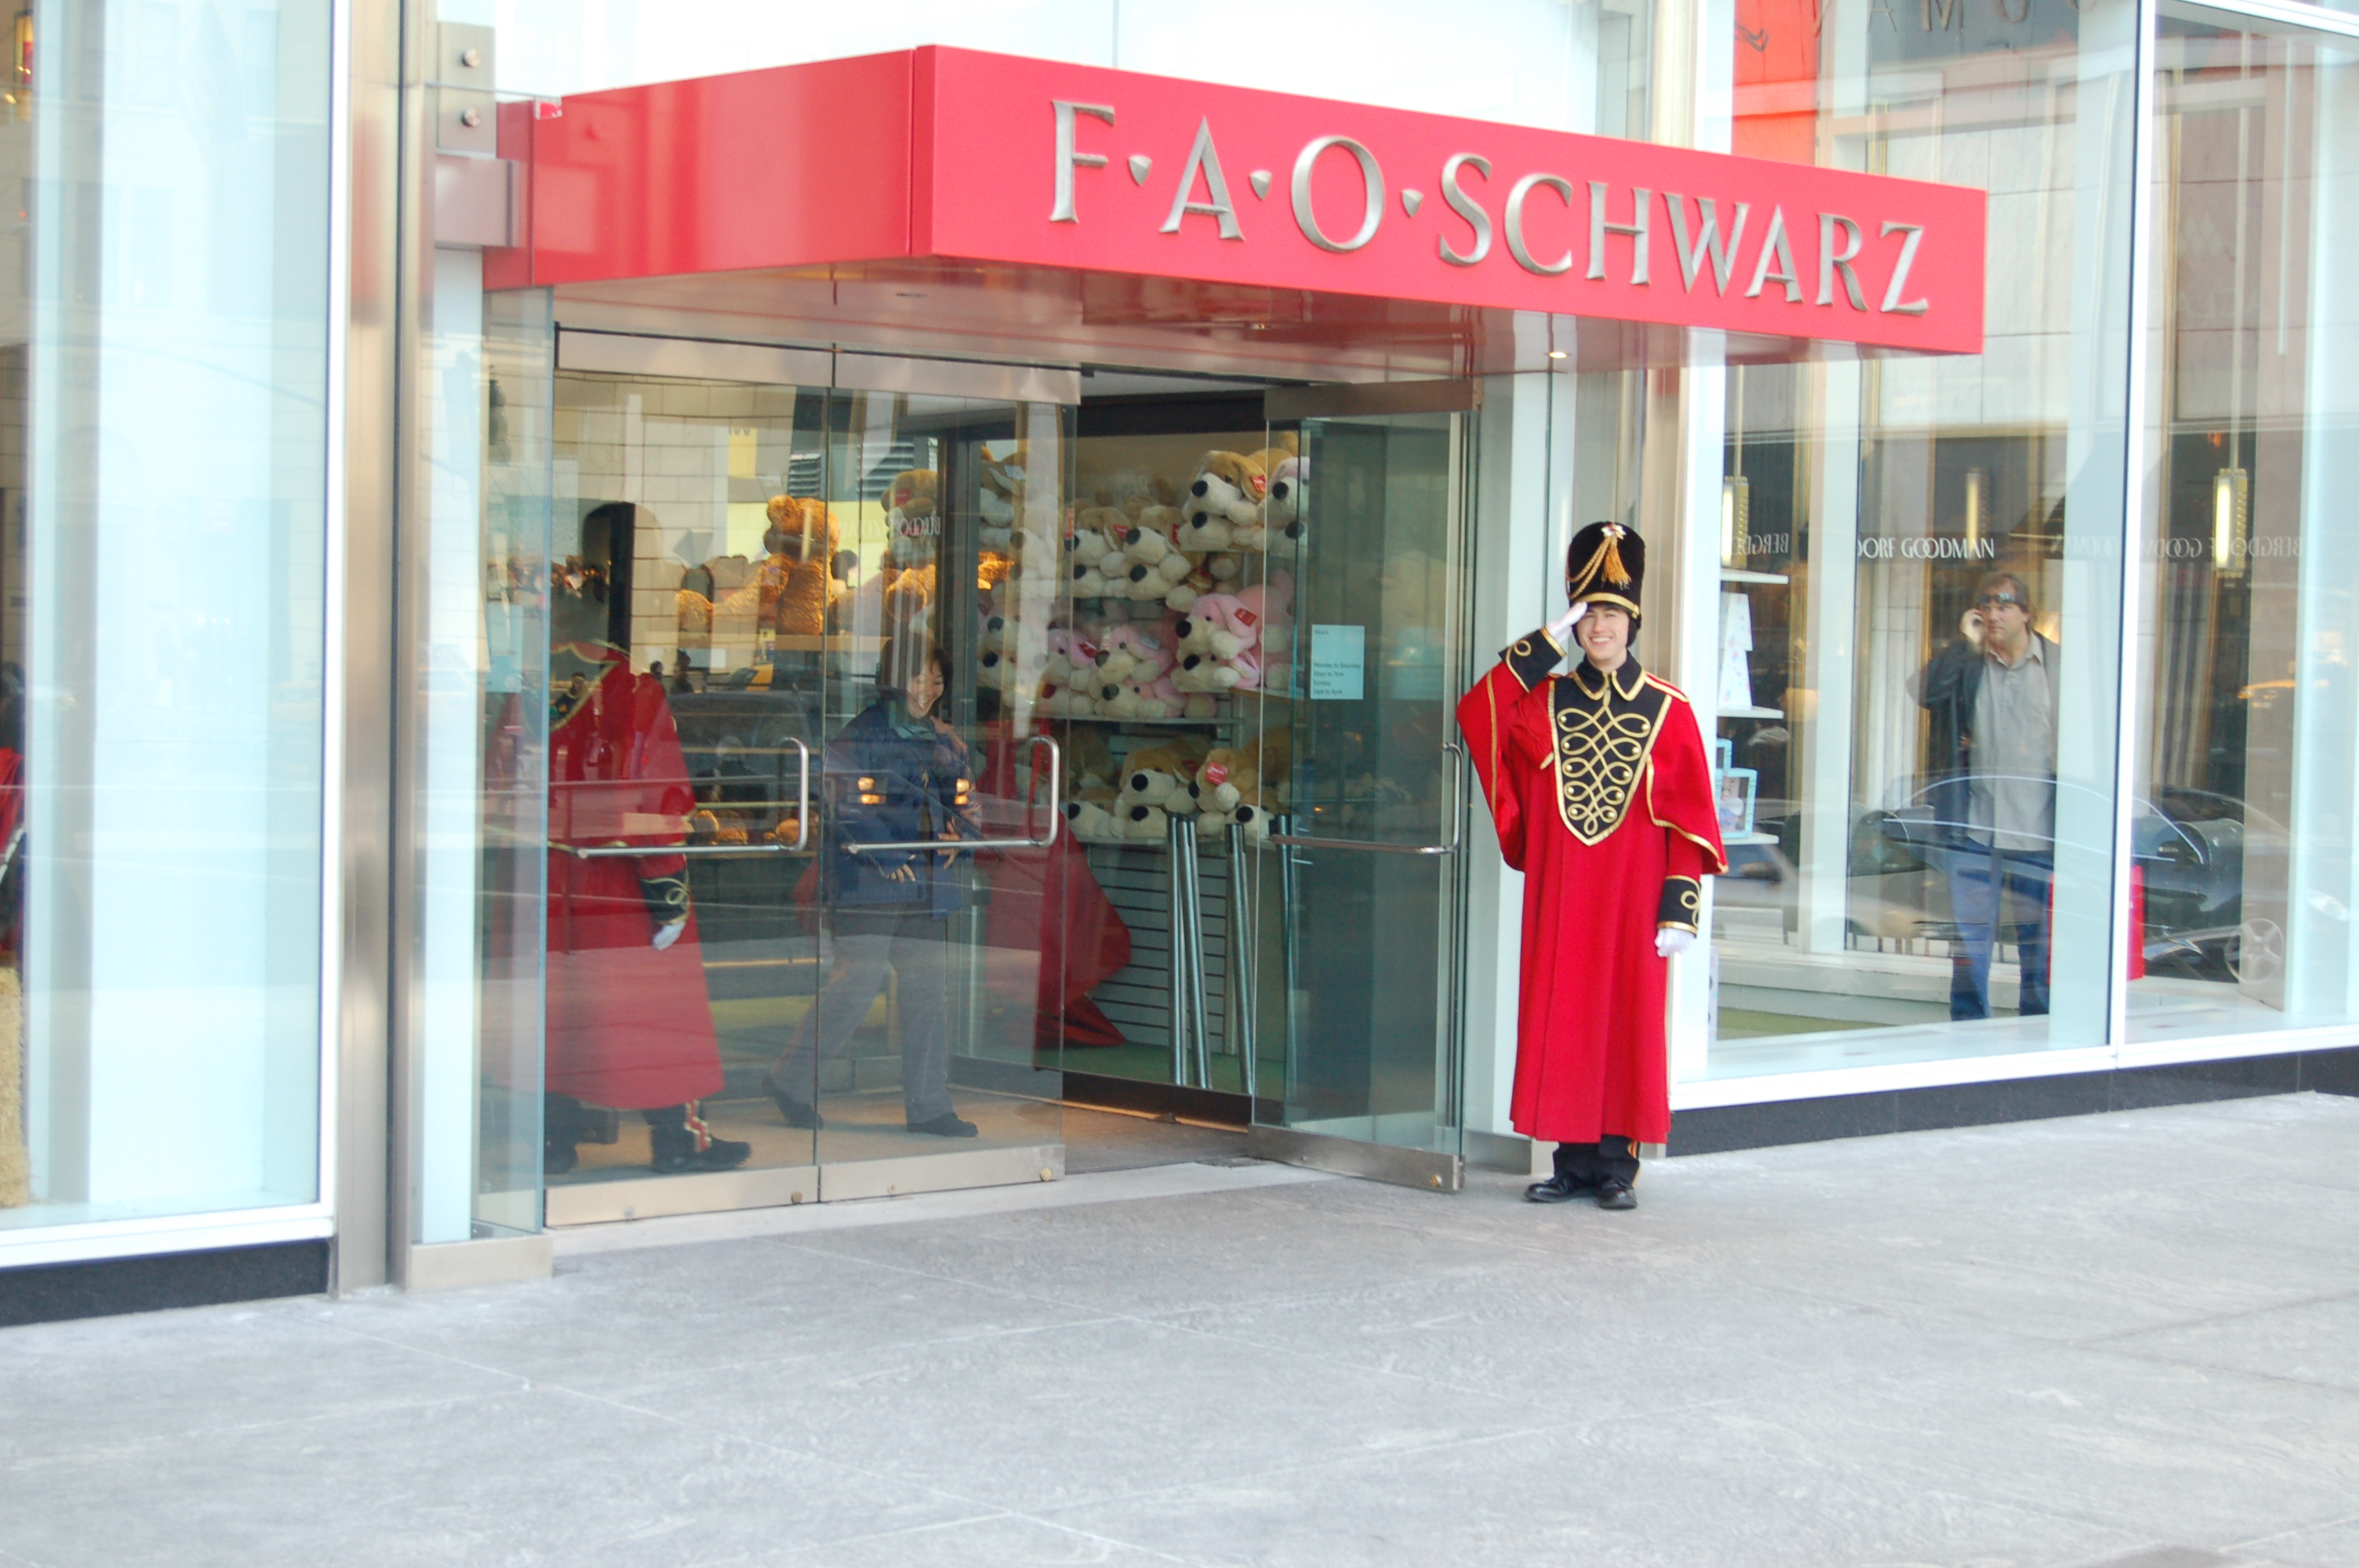 Image Source: http://upload.wikimedia.org/wikipedia/commons/8/8e/FAO_Schwarz_Front.jpg